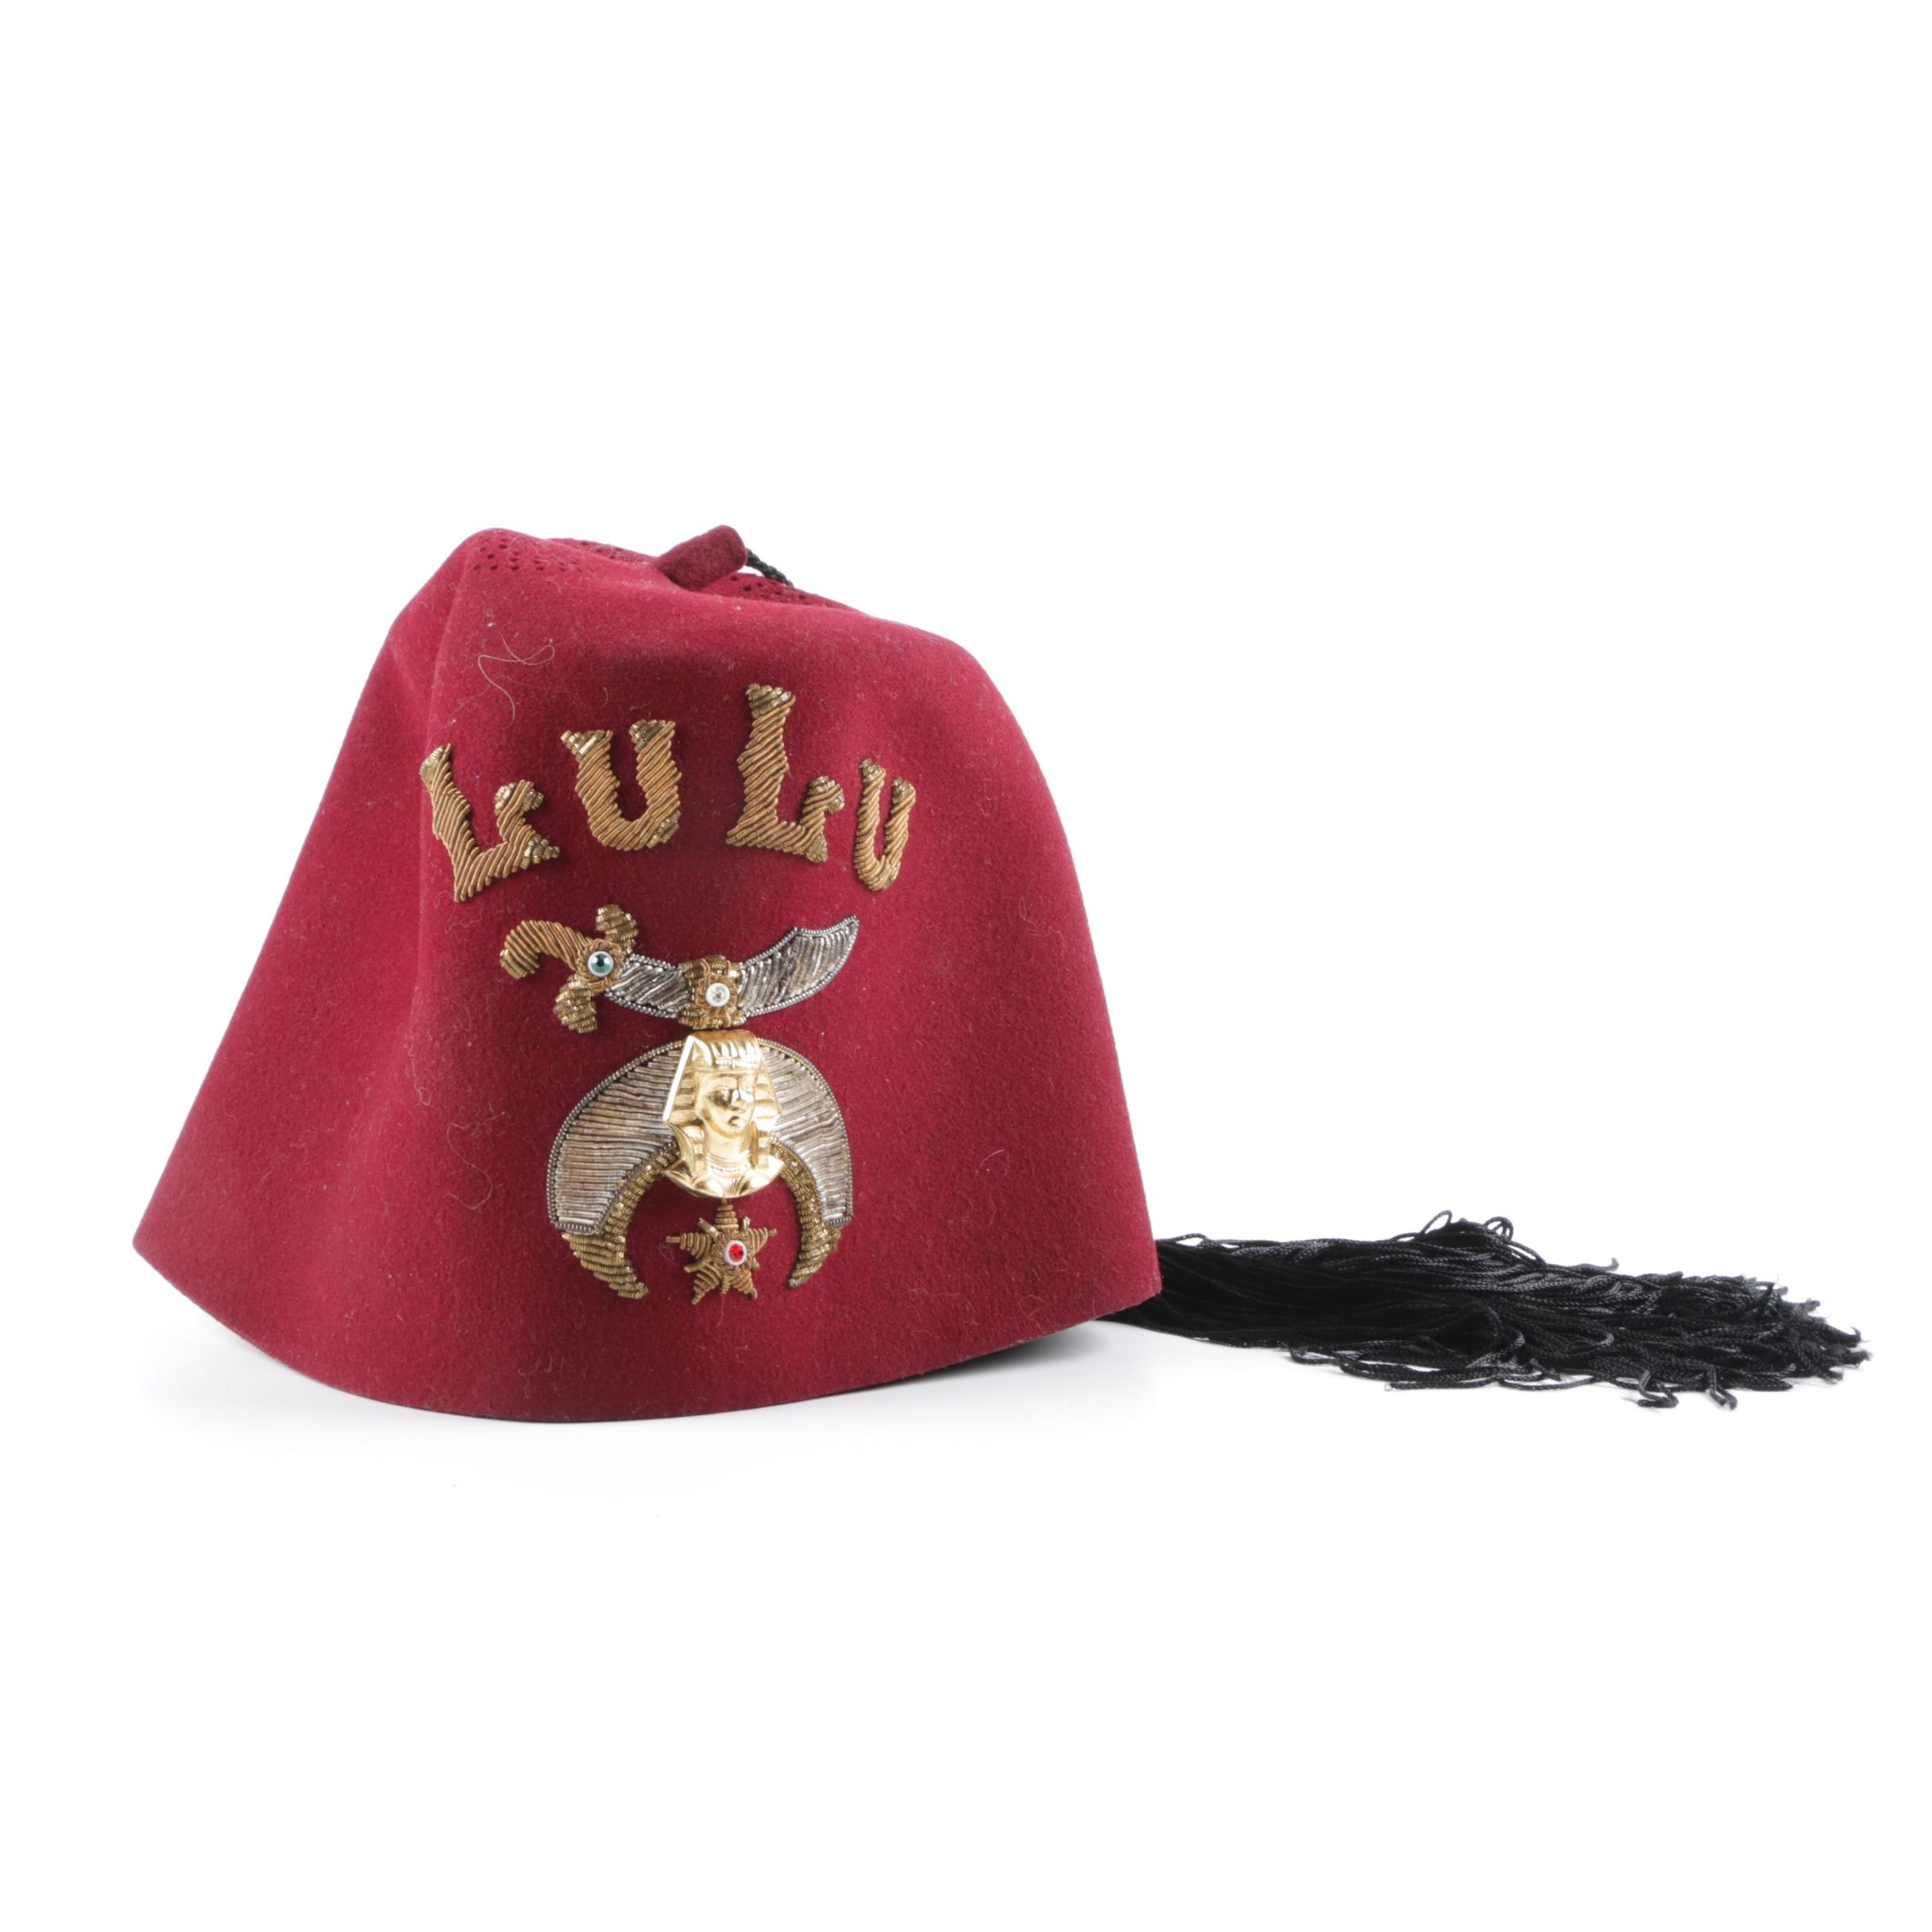 Vintage Red Wool Shriners Fez